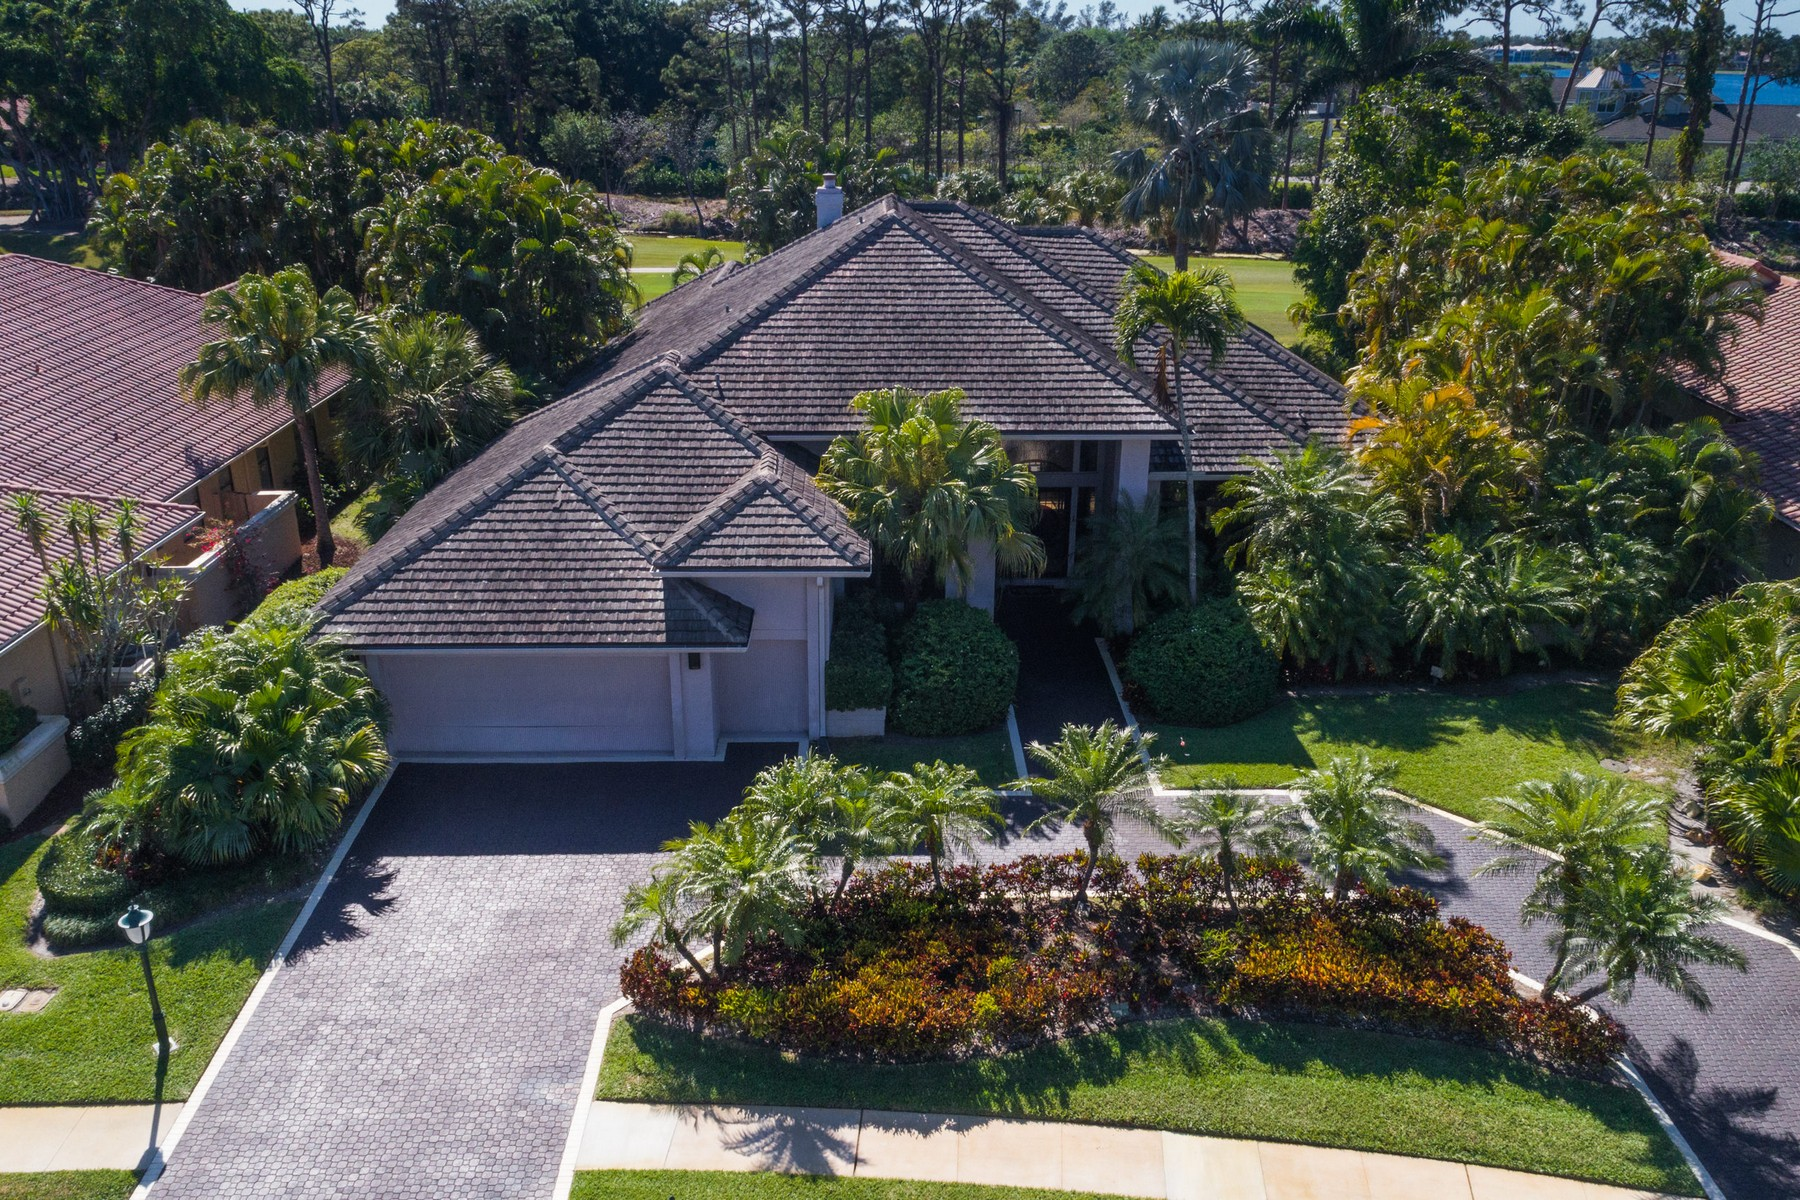 Single Family Home for Sale at 17858 Deauville Ln , Boca Raton, FL 33496 17858 Deauville Ln, Boca Raton, Florida, 33496 United States